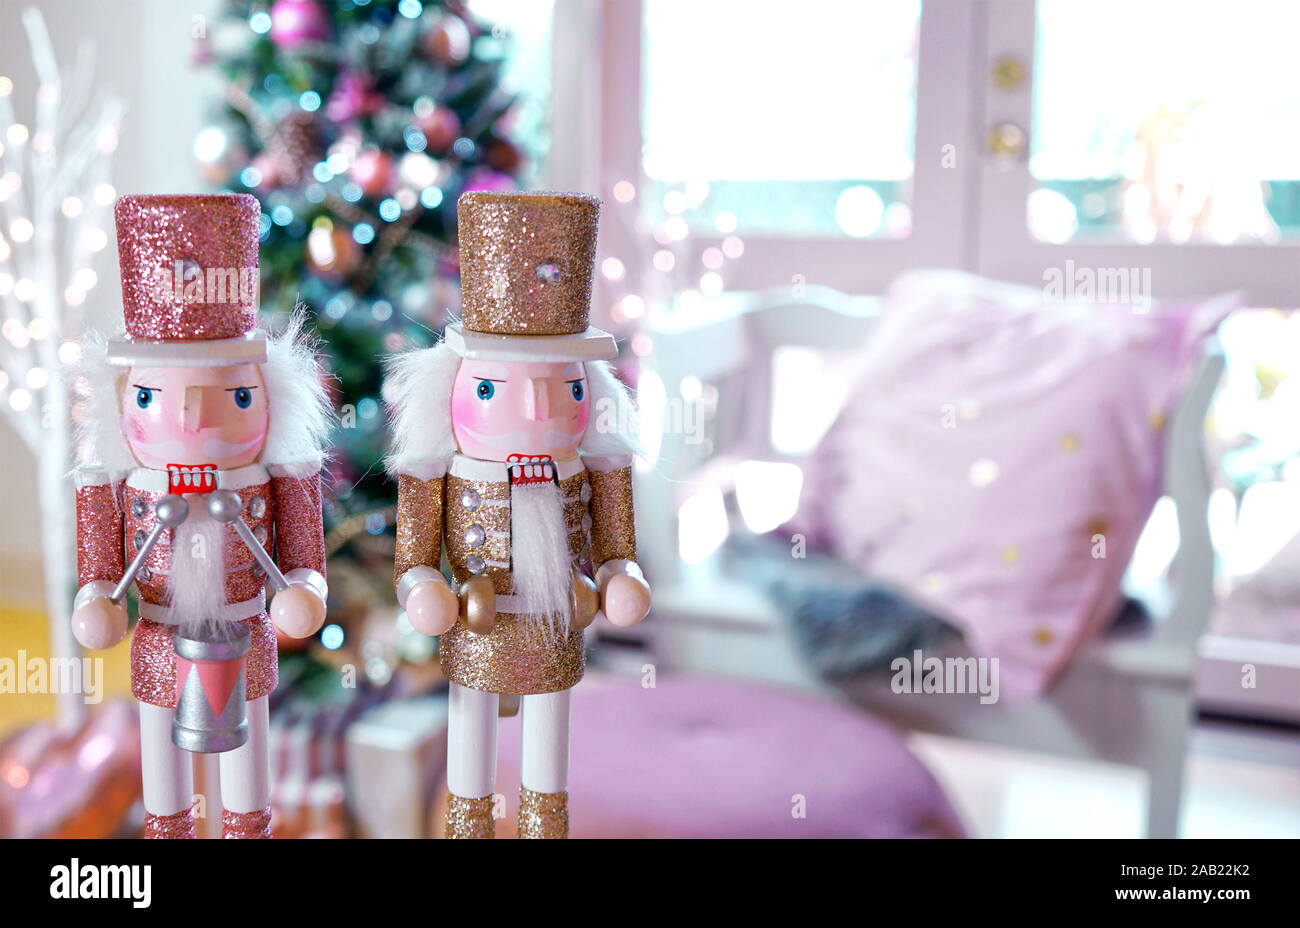 On Trend Pink And Rose Gold Trimmed Christmas Tree With Tray Of Cookies And Hot Chocolate For Santa Close Up On Nutcrackers Stock Photo Alamy